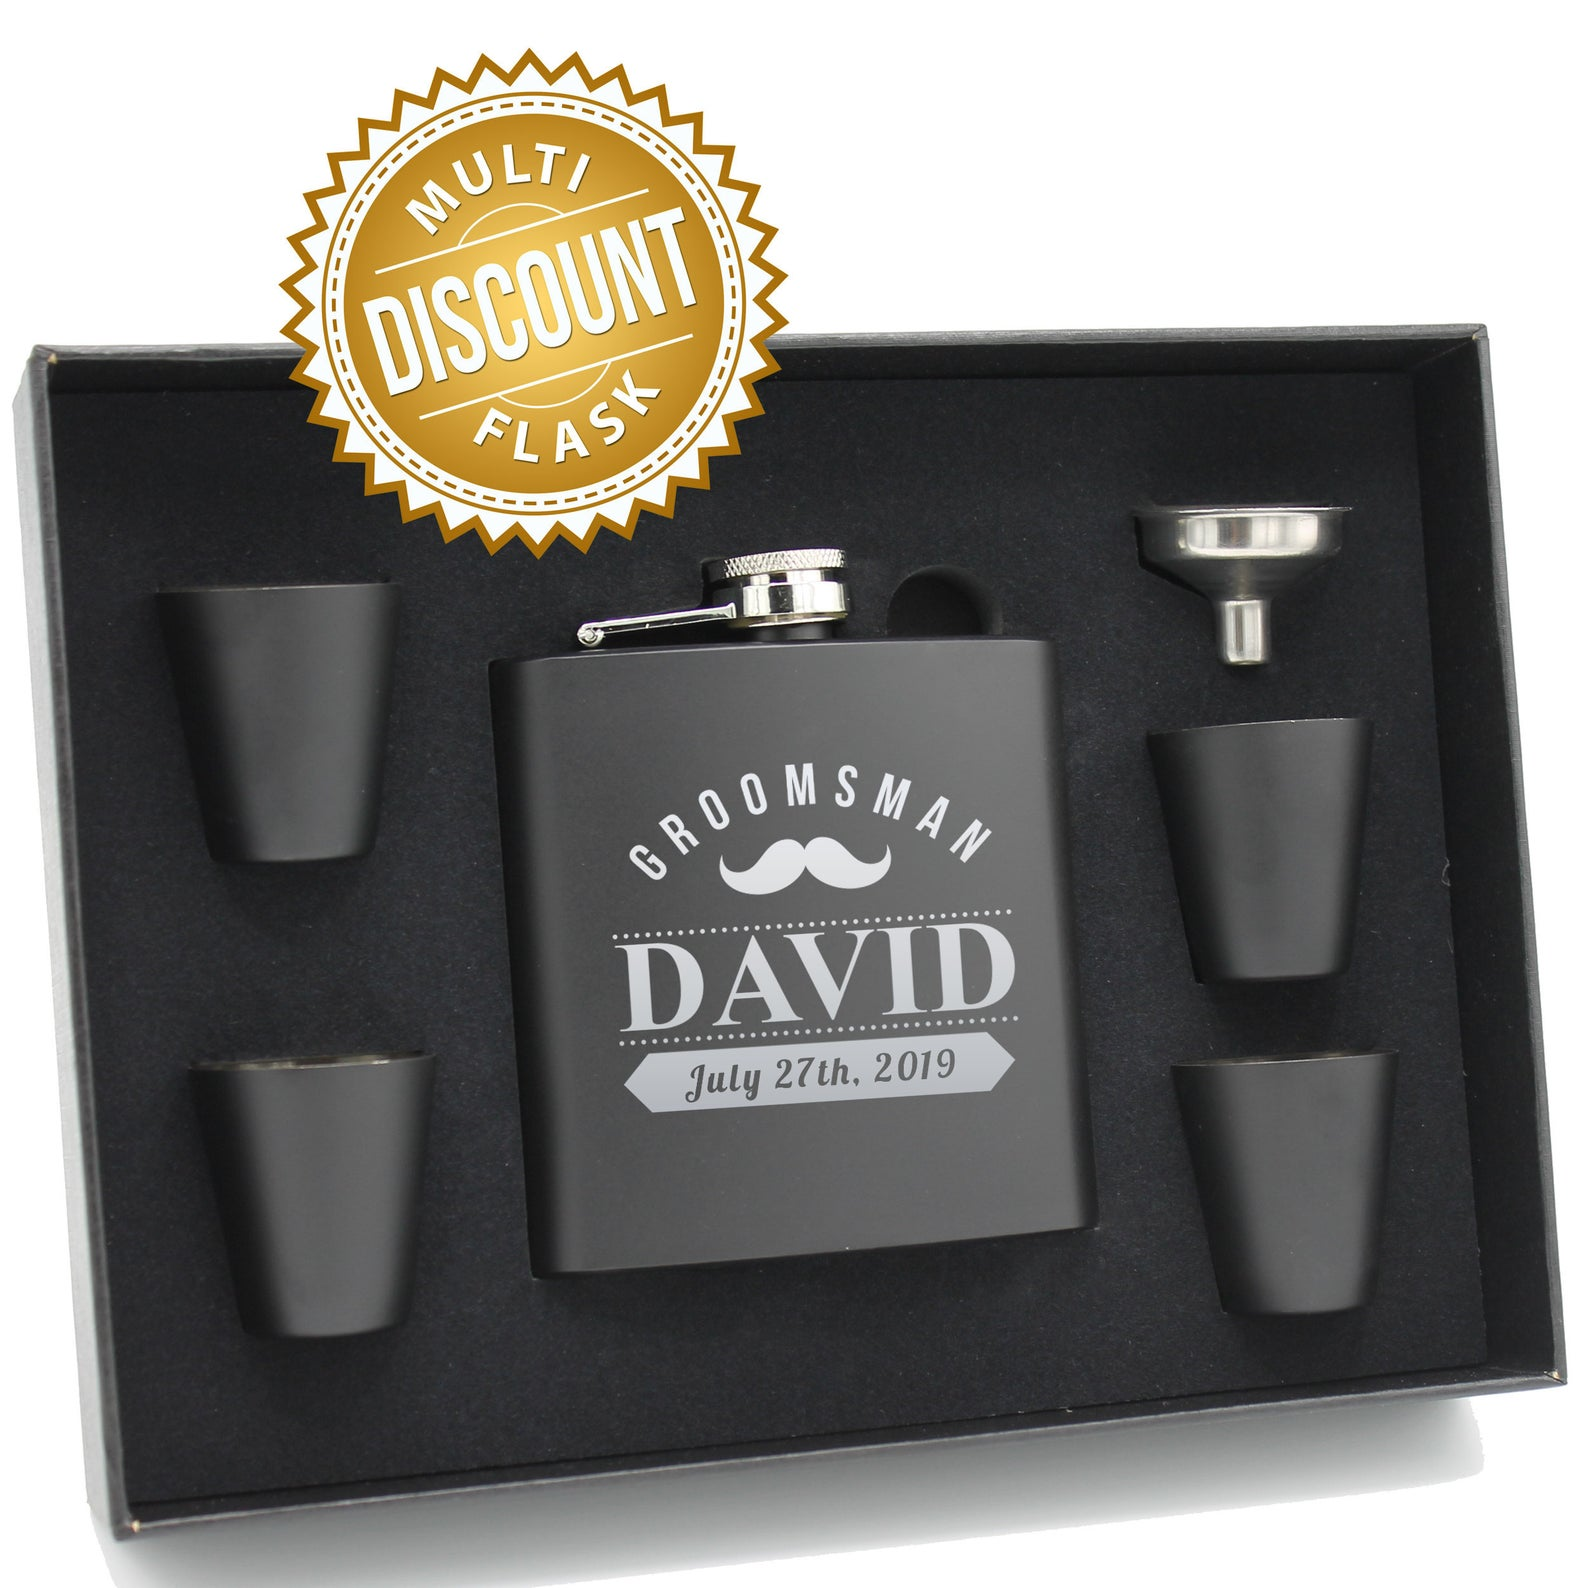 Personalized Flask Gift Set - Includes Shot Glasses